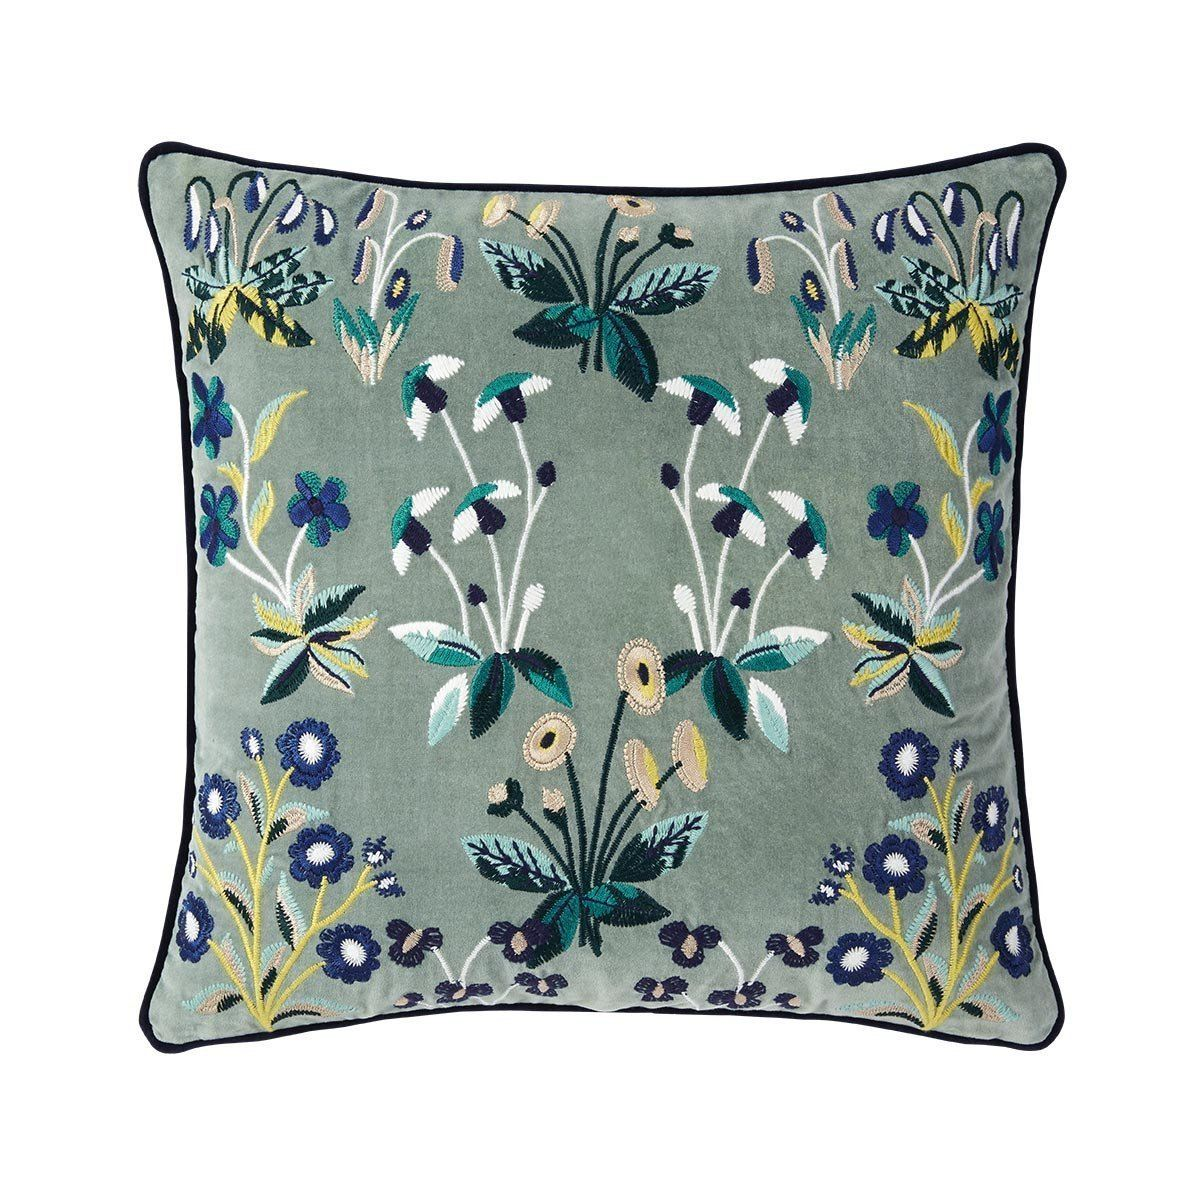 Renaissance Jade Floral Pillow by Iosis